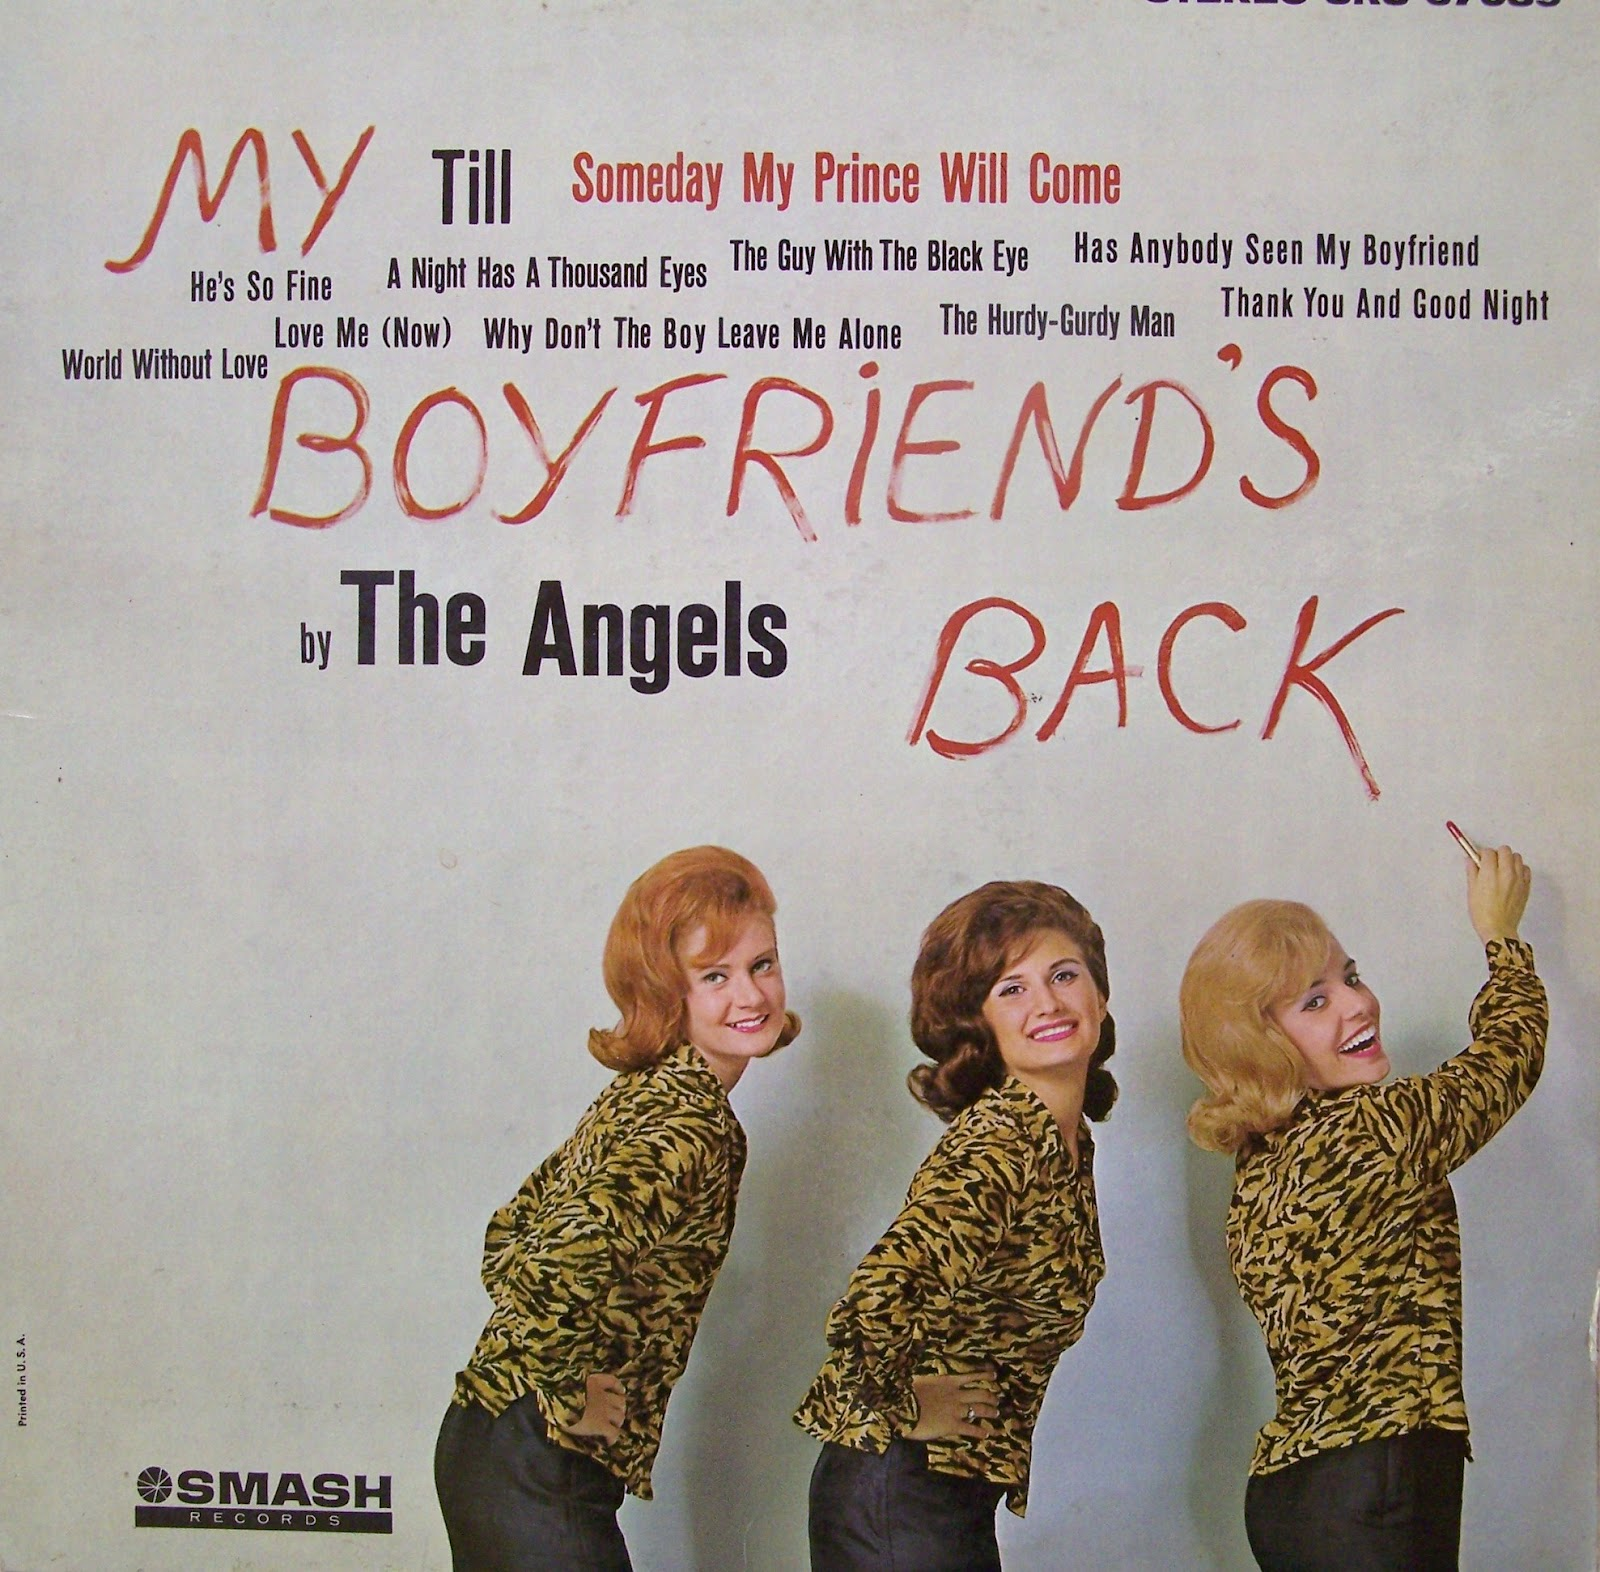 Angels%2520My%2520Boyfriends%2520Back ... by Elaine Brown released in 1969, with song titles including Seize The ...